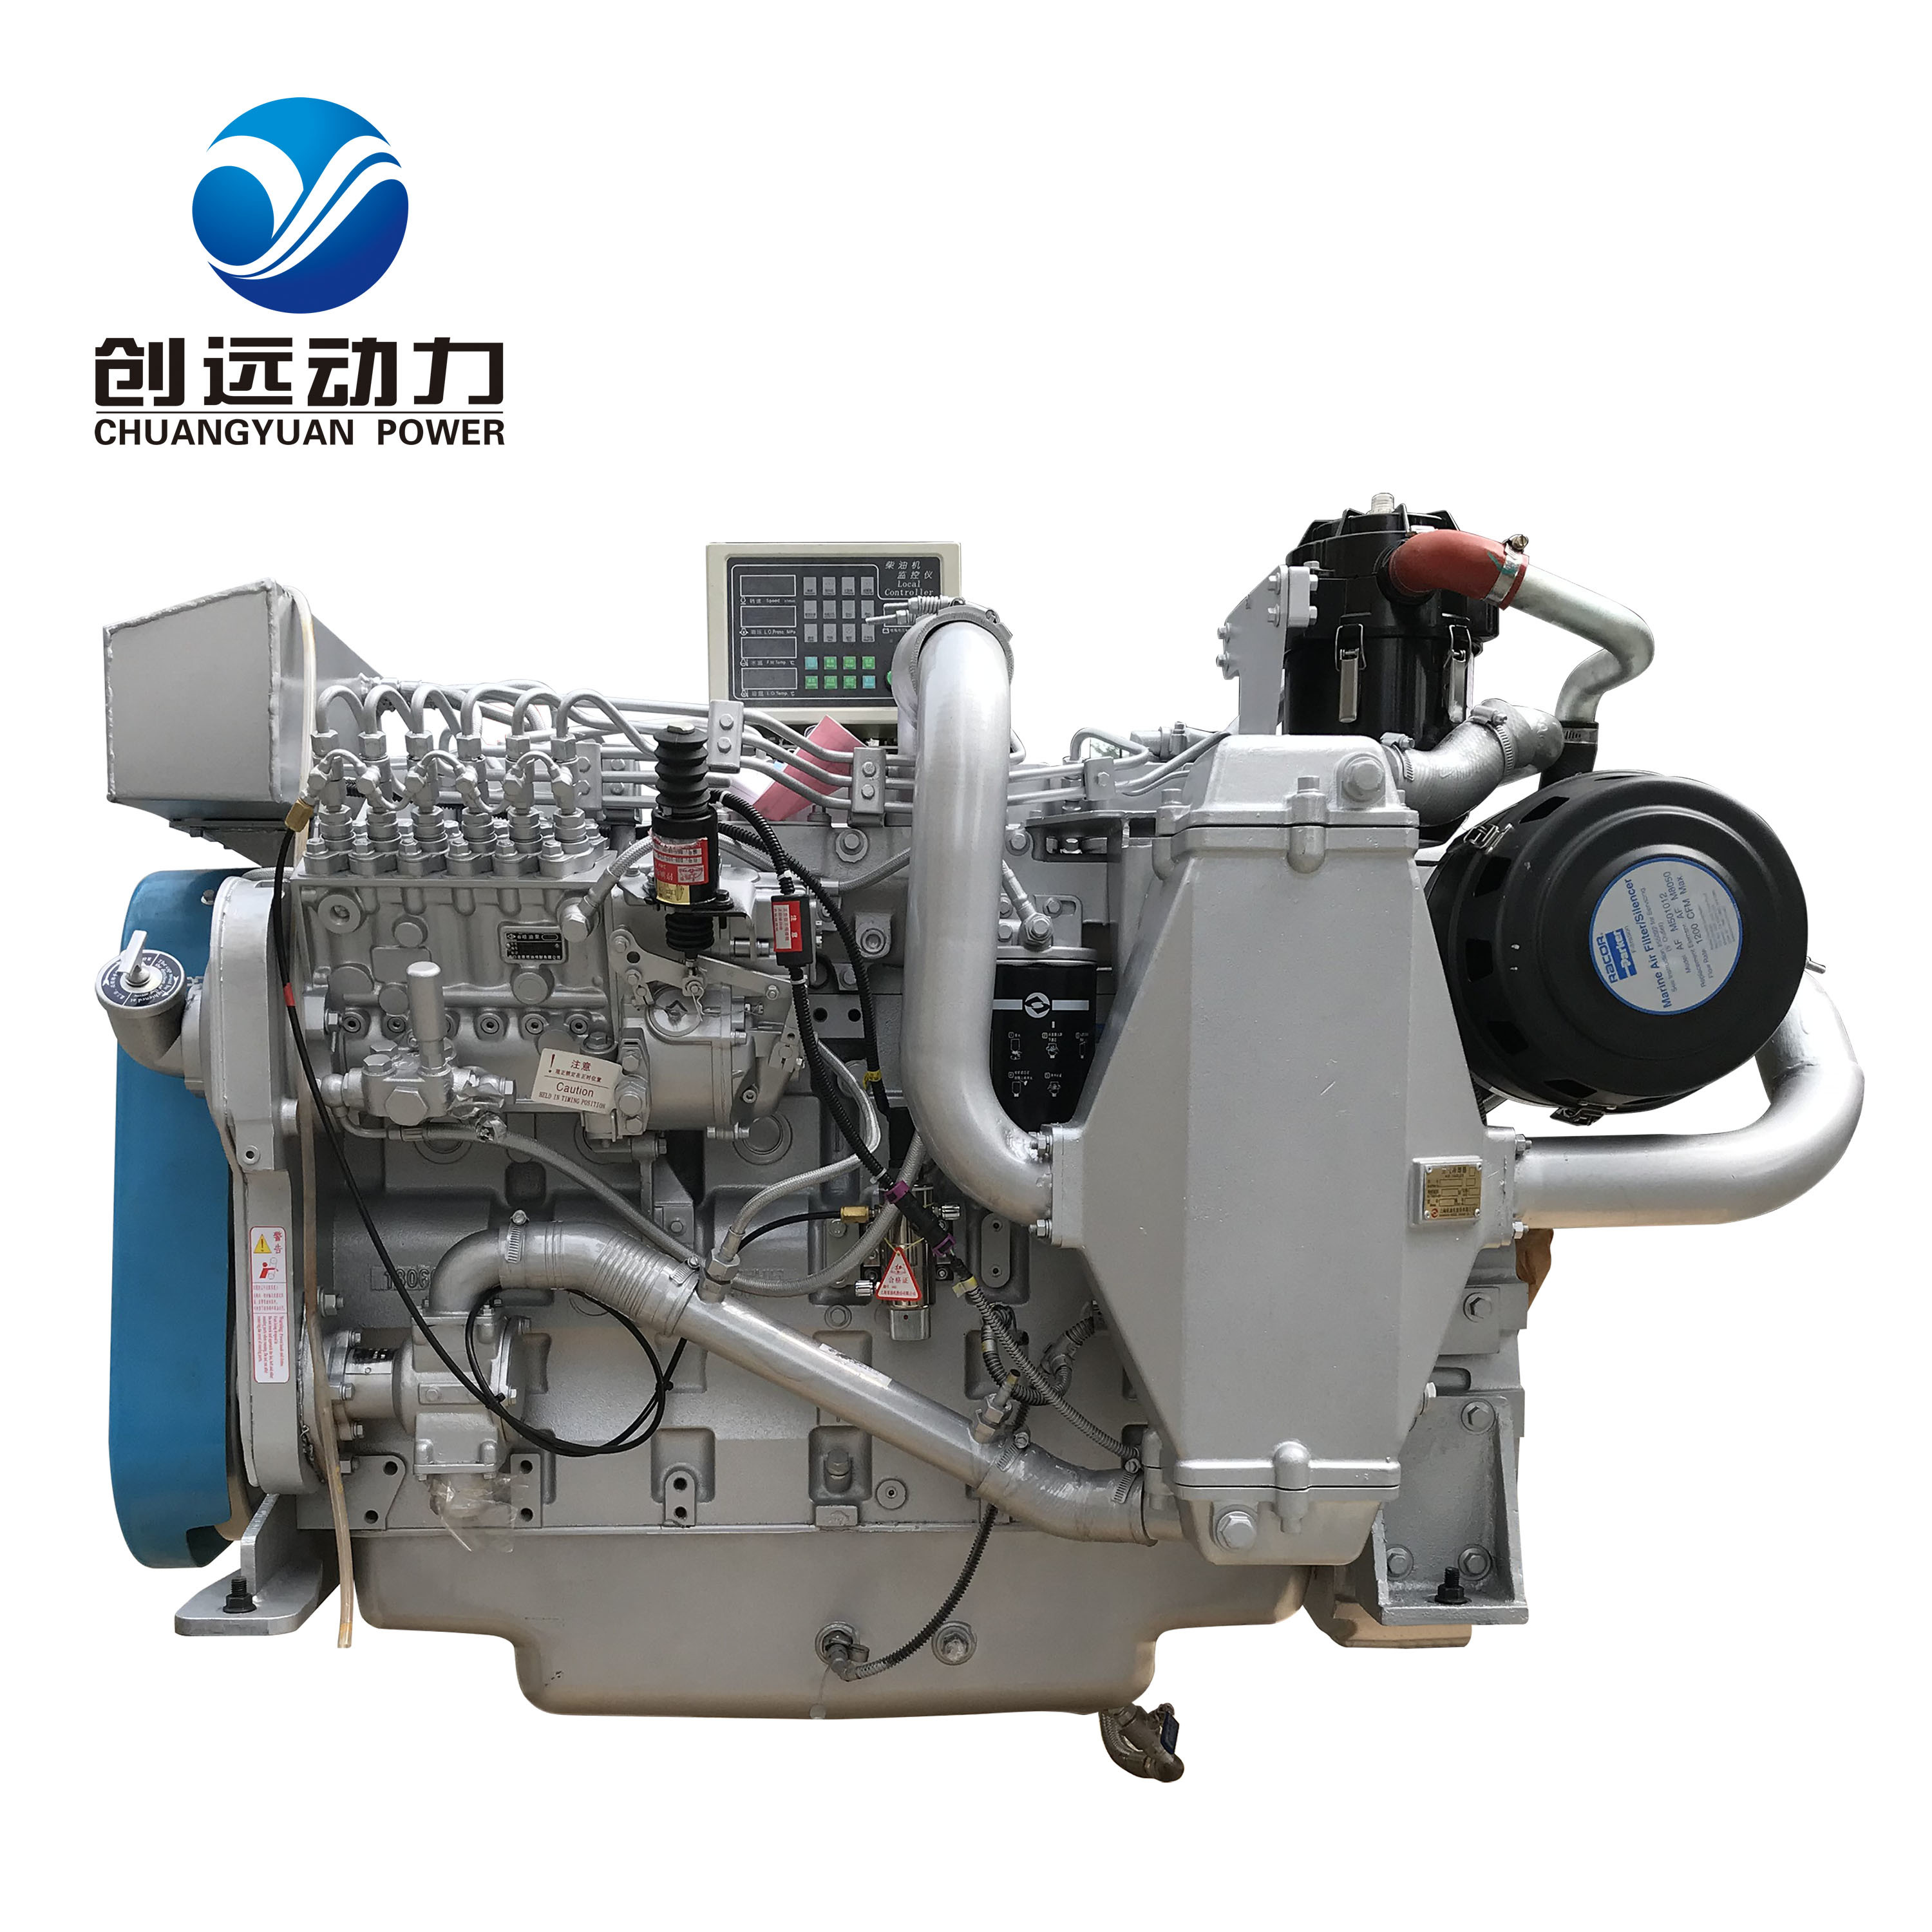 [Hot Item] High Speed Sdec 360 HP 6 Cylinder Small Marine Diesel Engine for  Boat D683